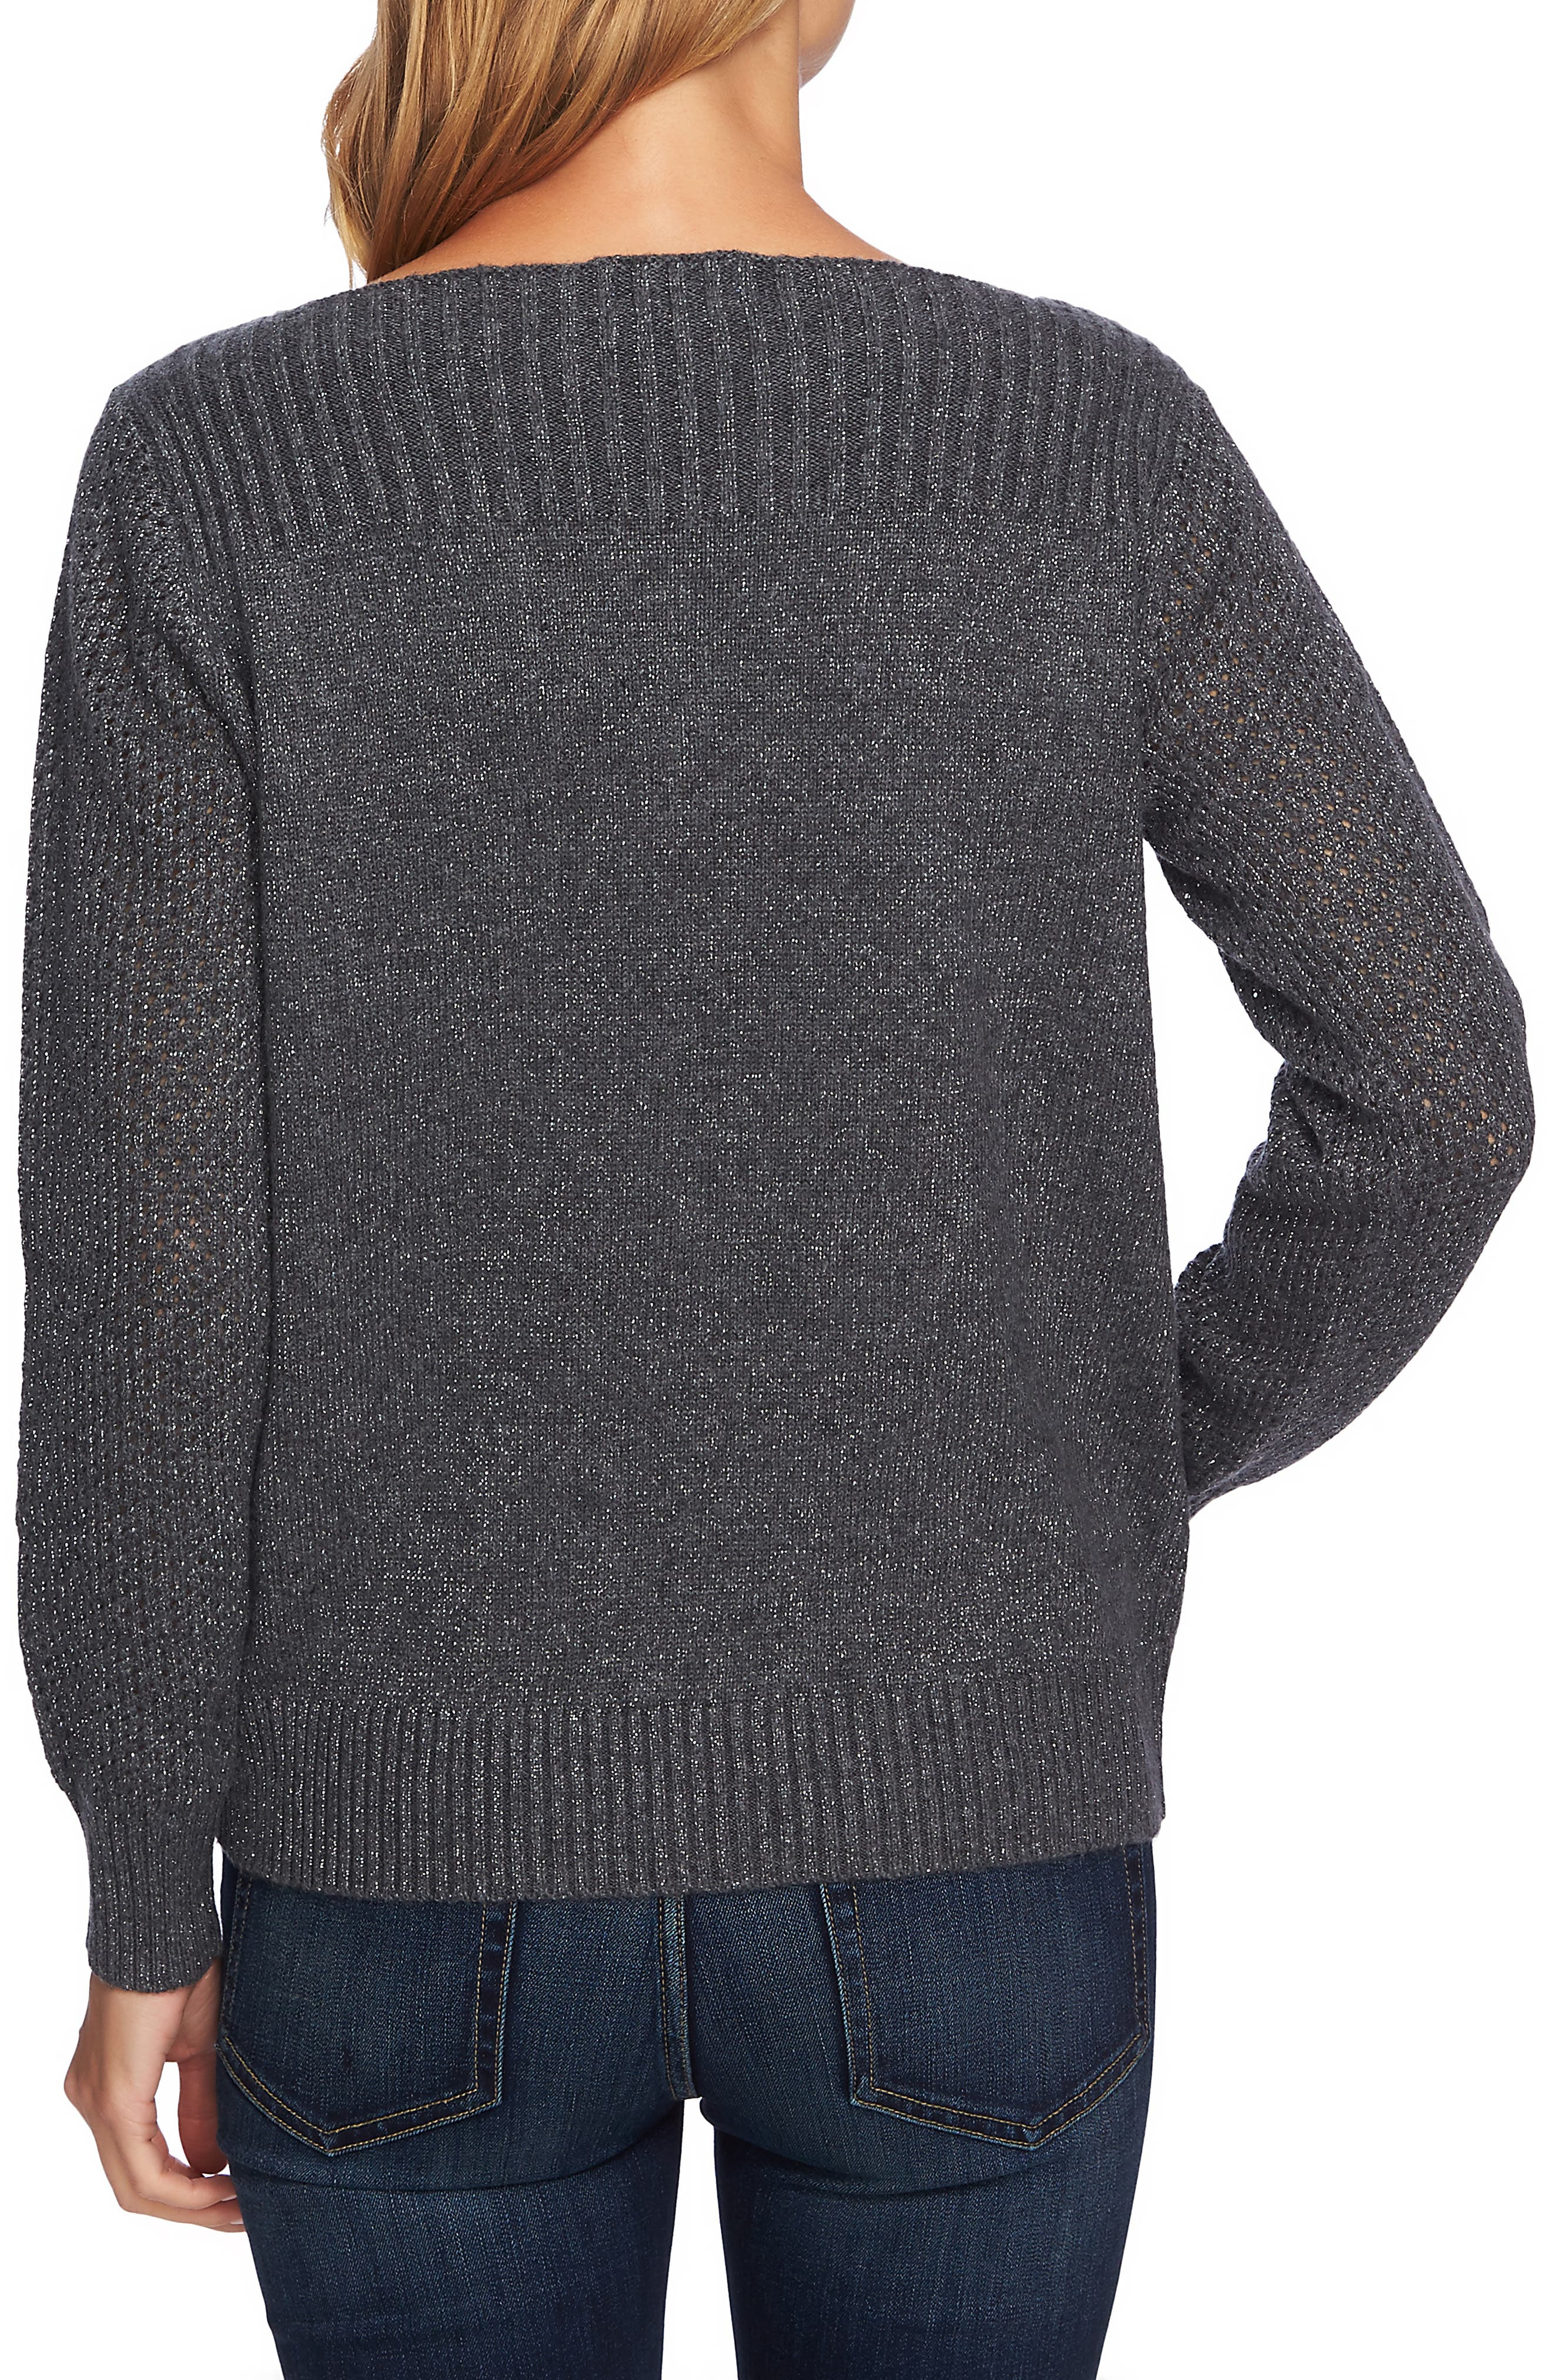 Metallic Knit Sweater,                             Alternate thumbnail 2, color,                             MED HEATHER GREY